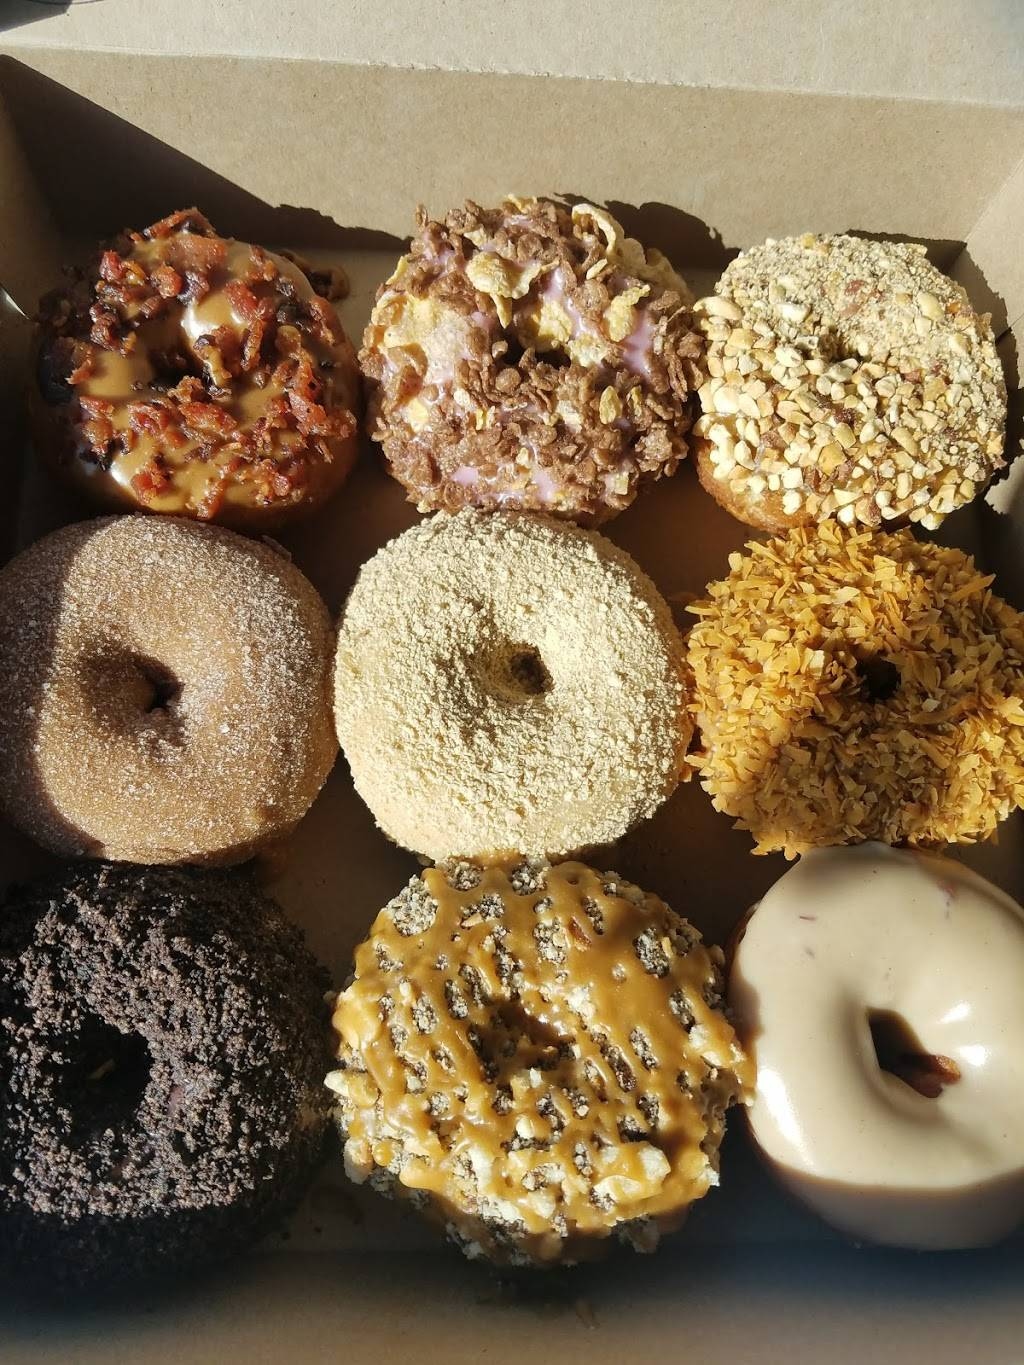 Uncle Doods Donuts LLC   bakery   4 Robbins St, Toms River, NJ 08753, USA   6094623517 OR +1 609-462-3517